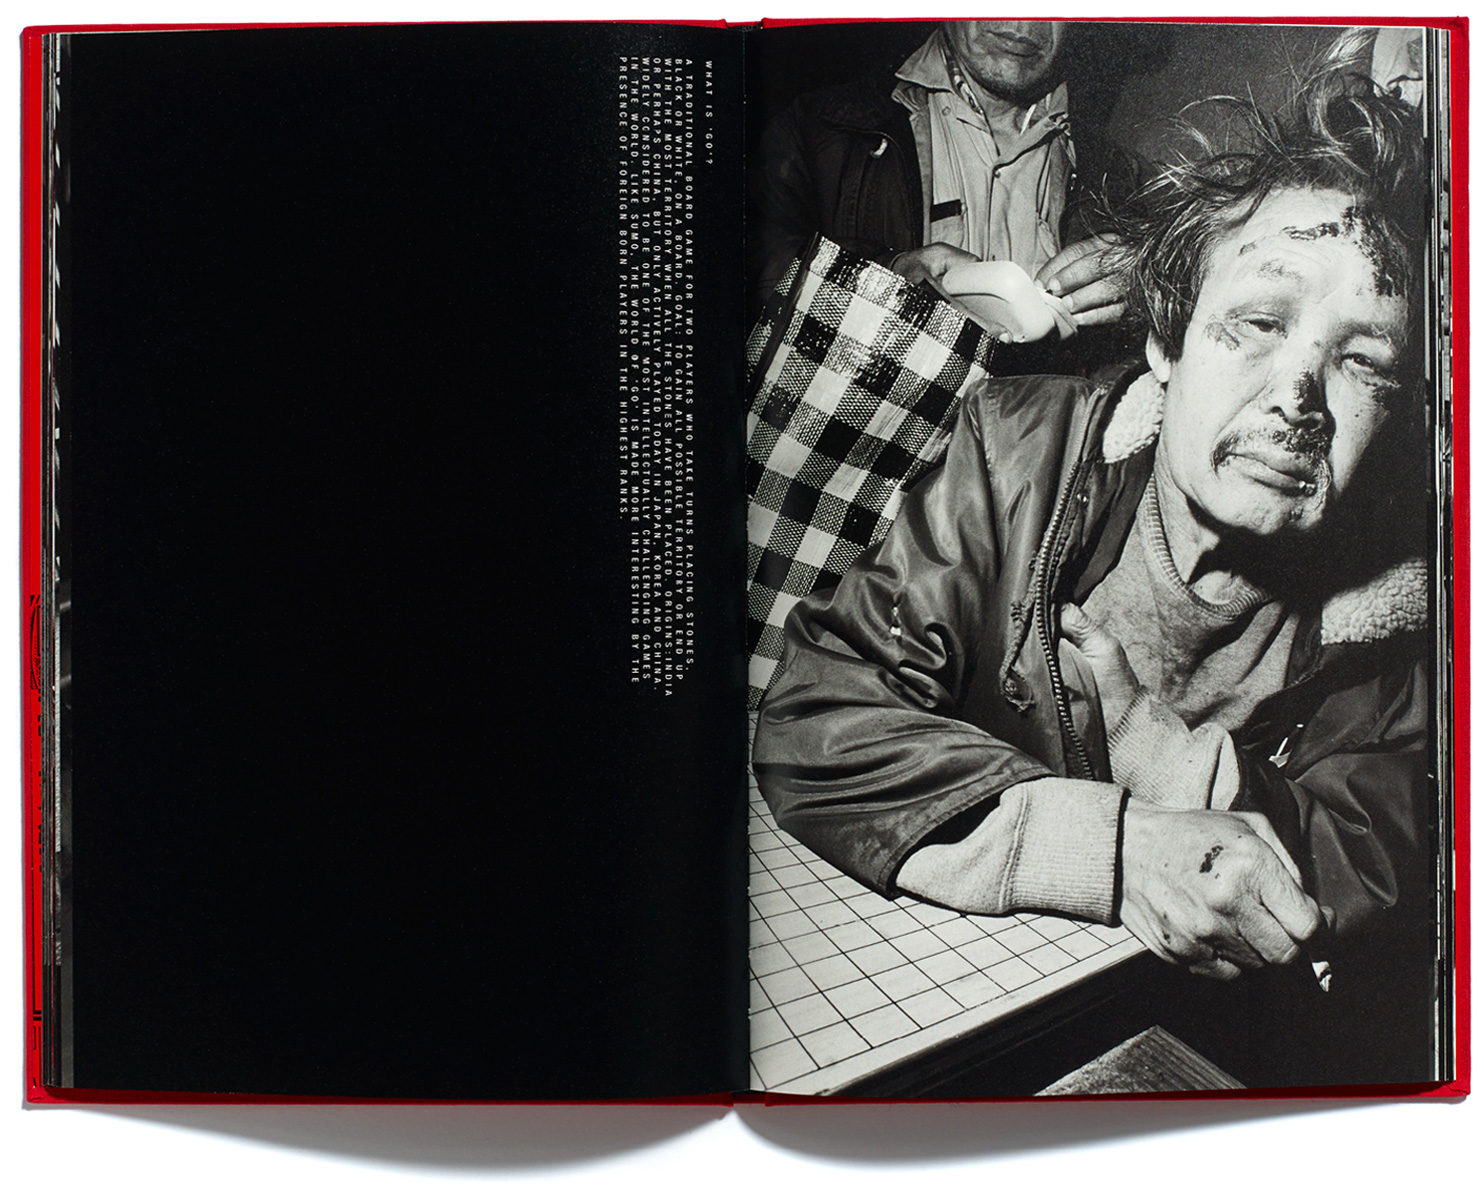 Bruce Gilden, Go, Published by Browns Editions, Design by Browns Design book